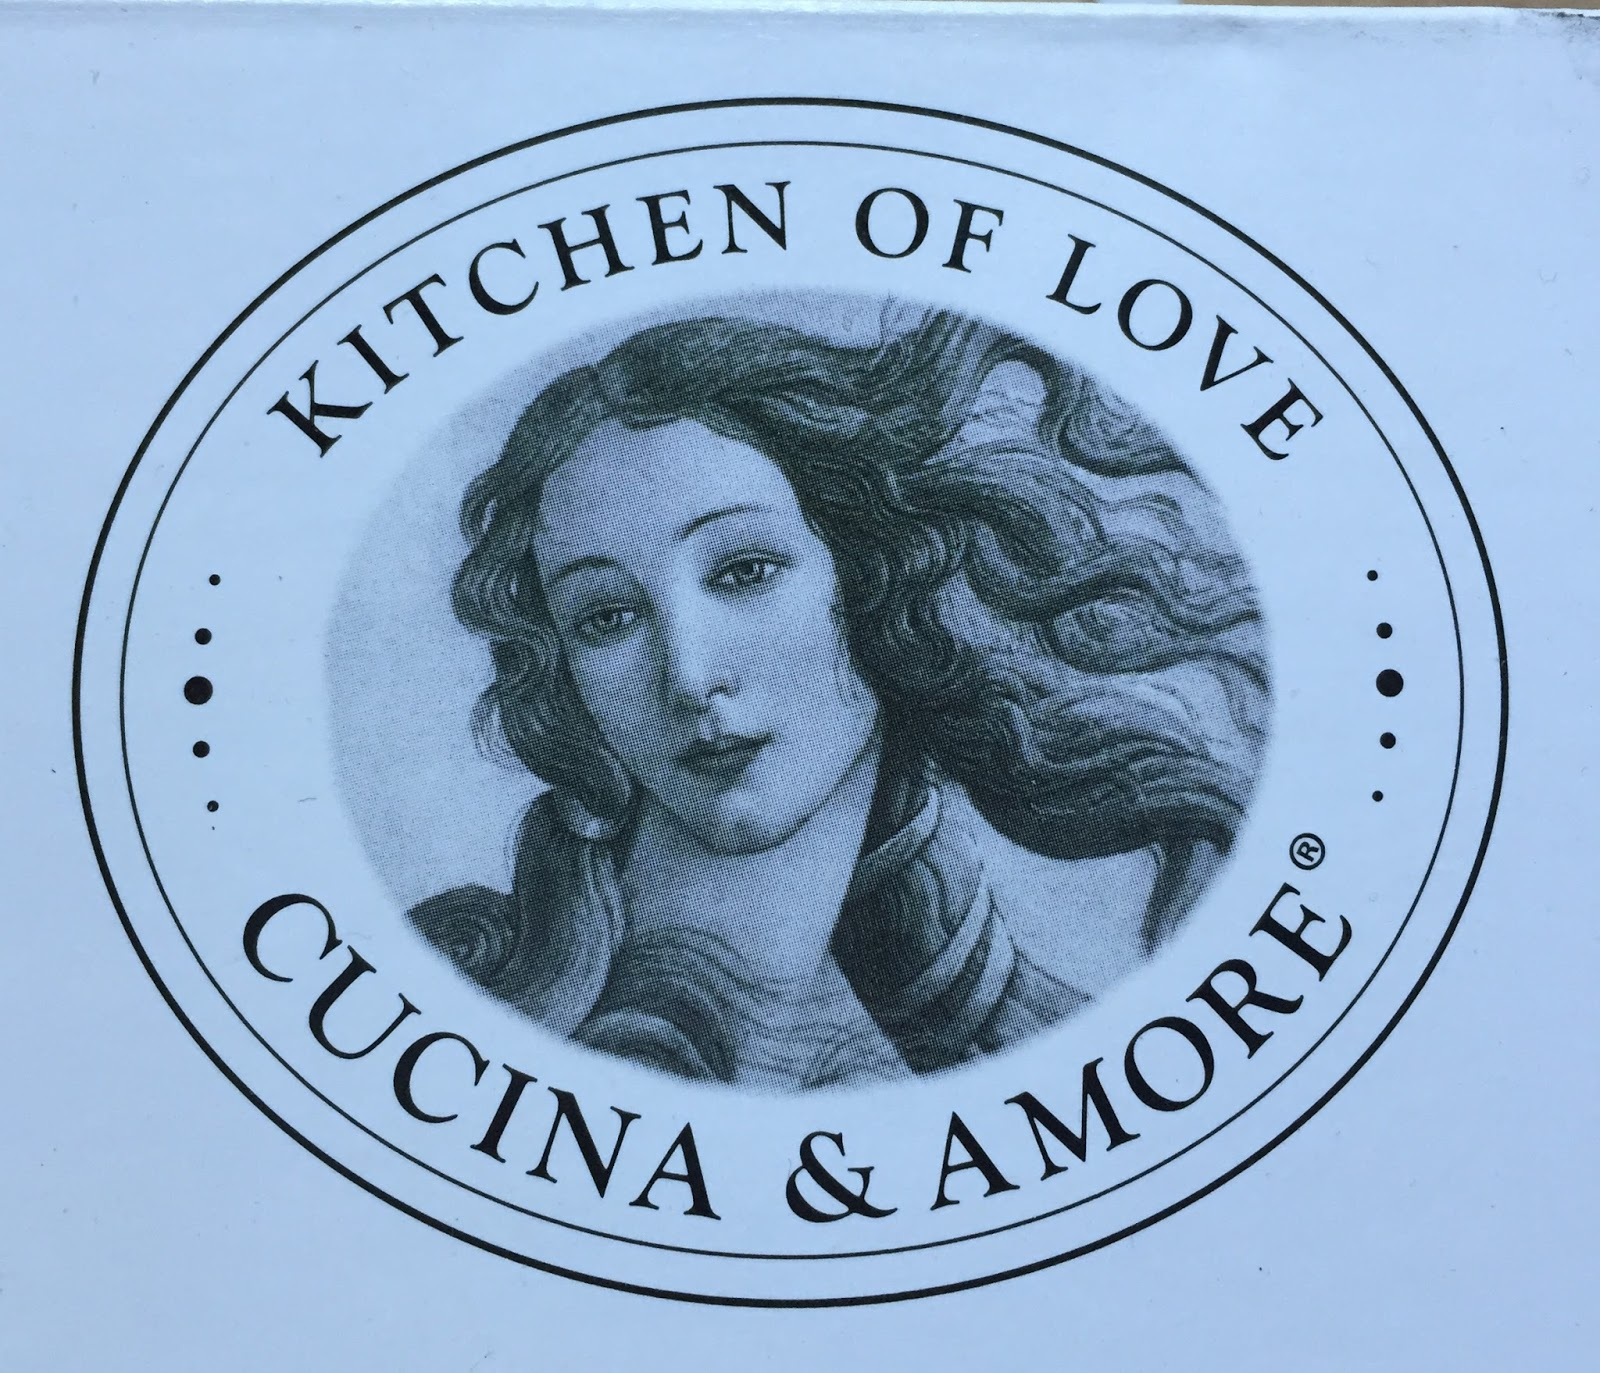 Cucina And Amore Quinoa Review The Healthy Eat On The Go Cucina Amore Quinoa Meals Jacket